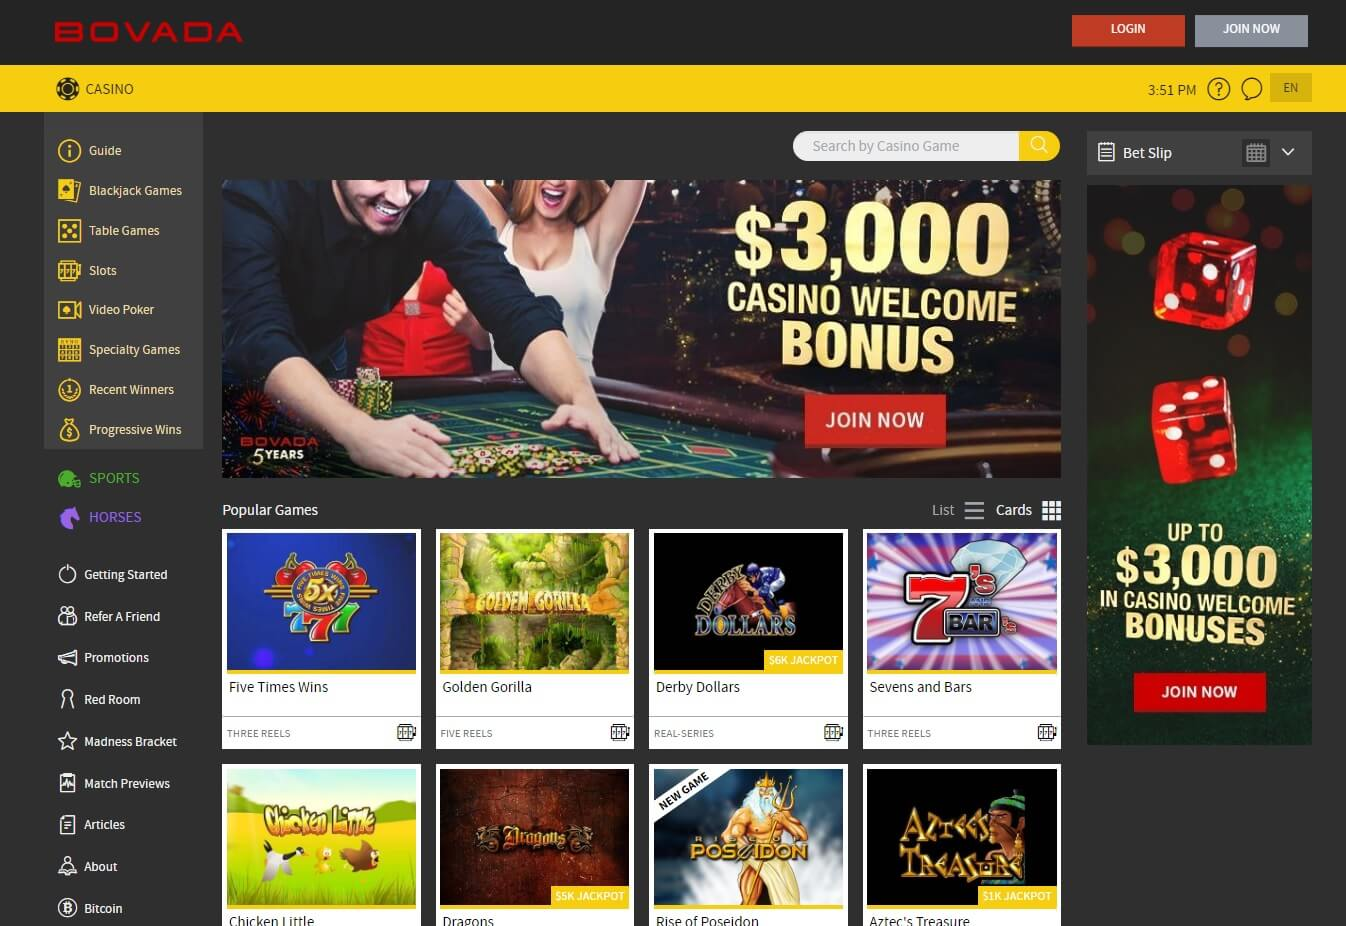 bovada casino games slots usa